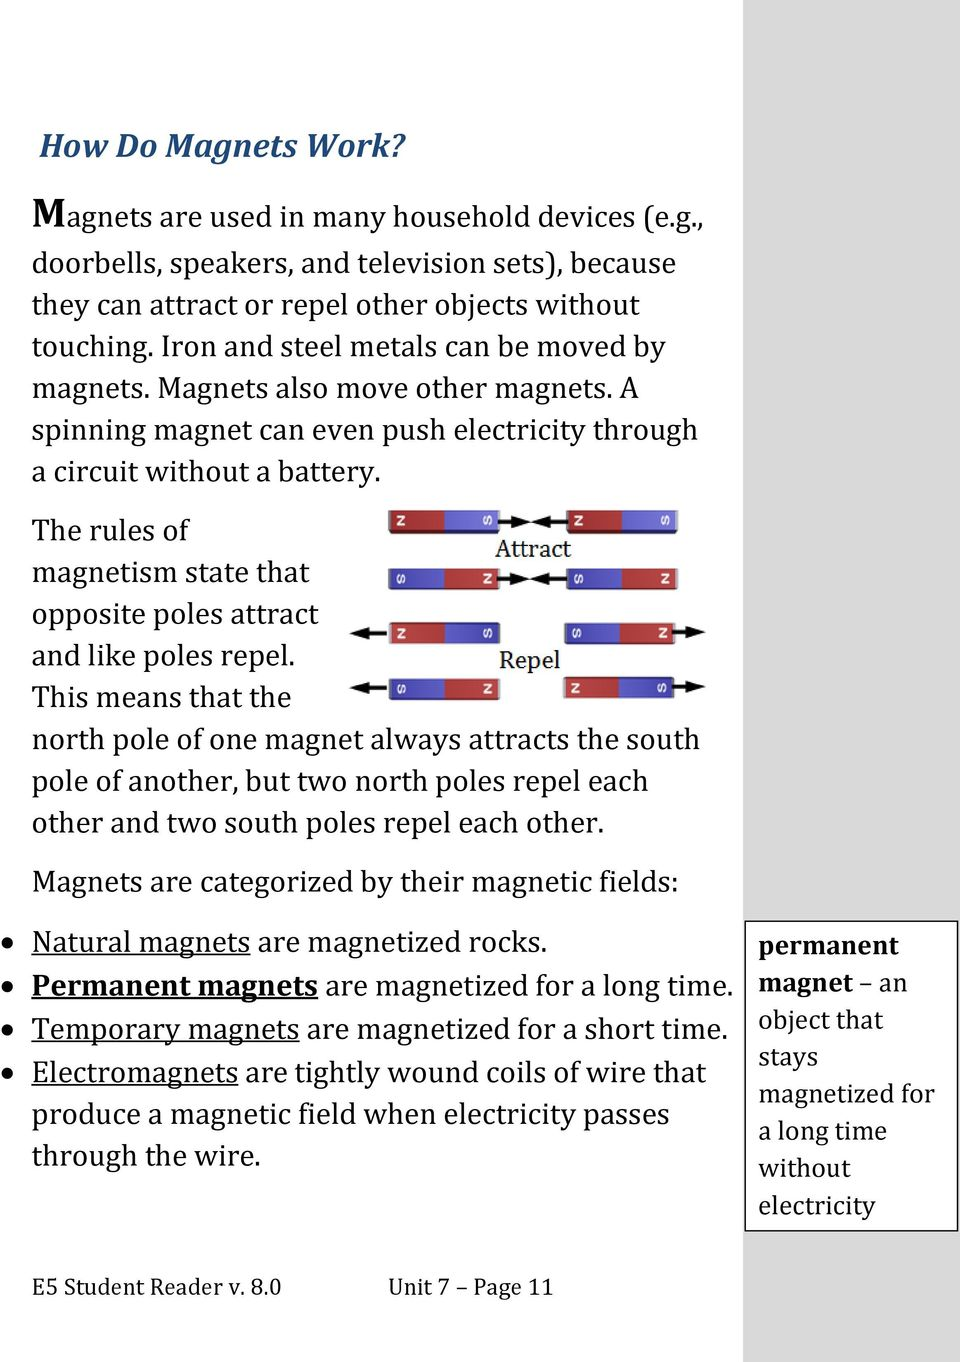 The rules of magnetism state that opposite poles attract and like poles repel.